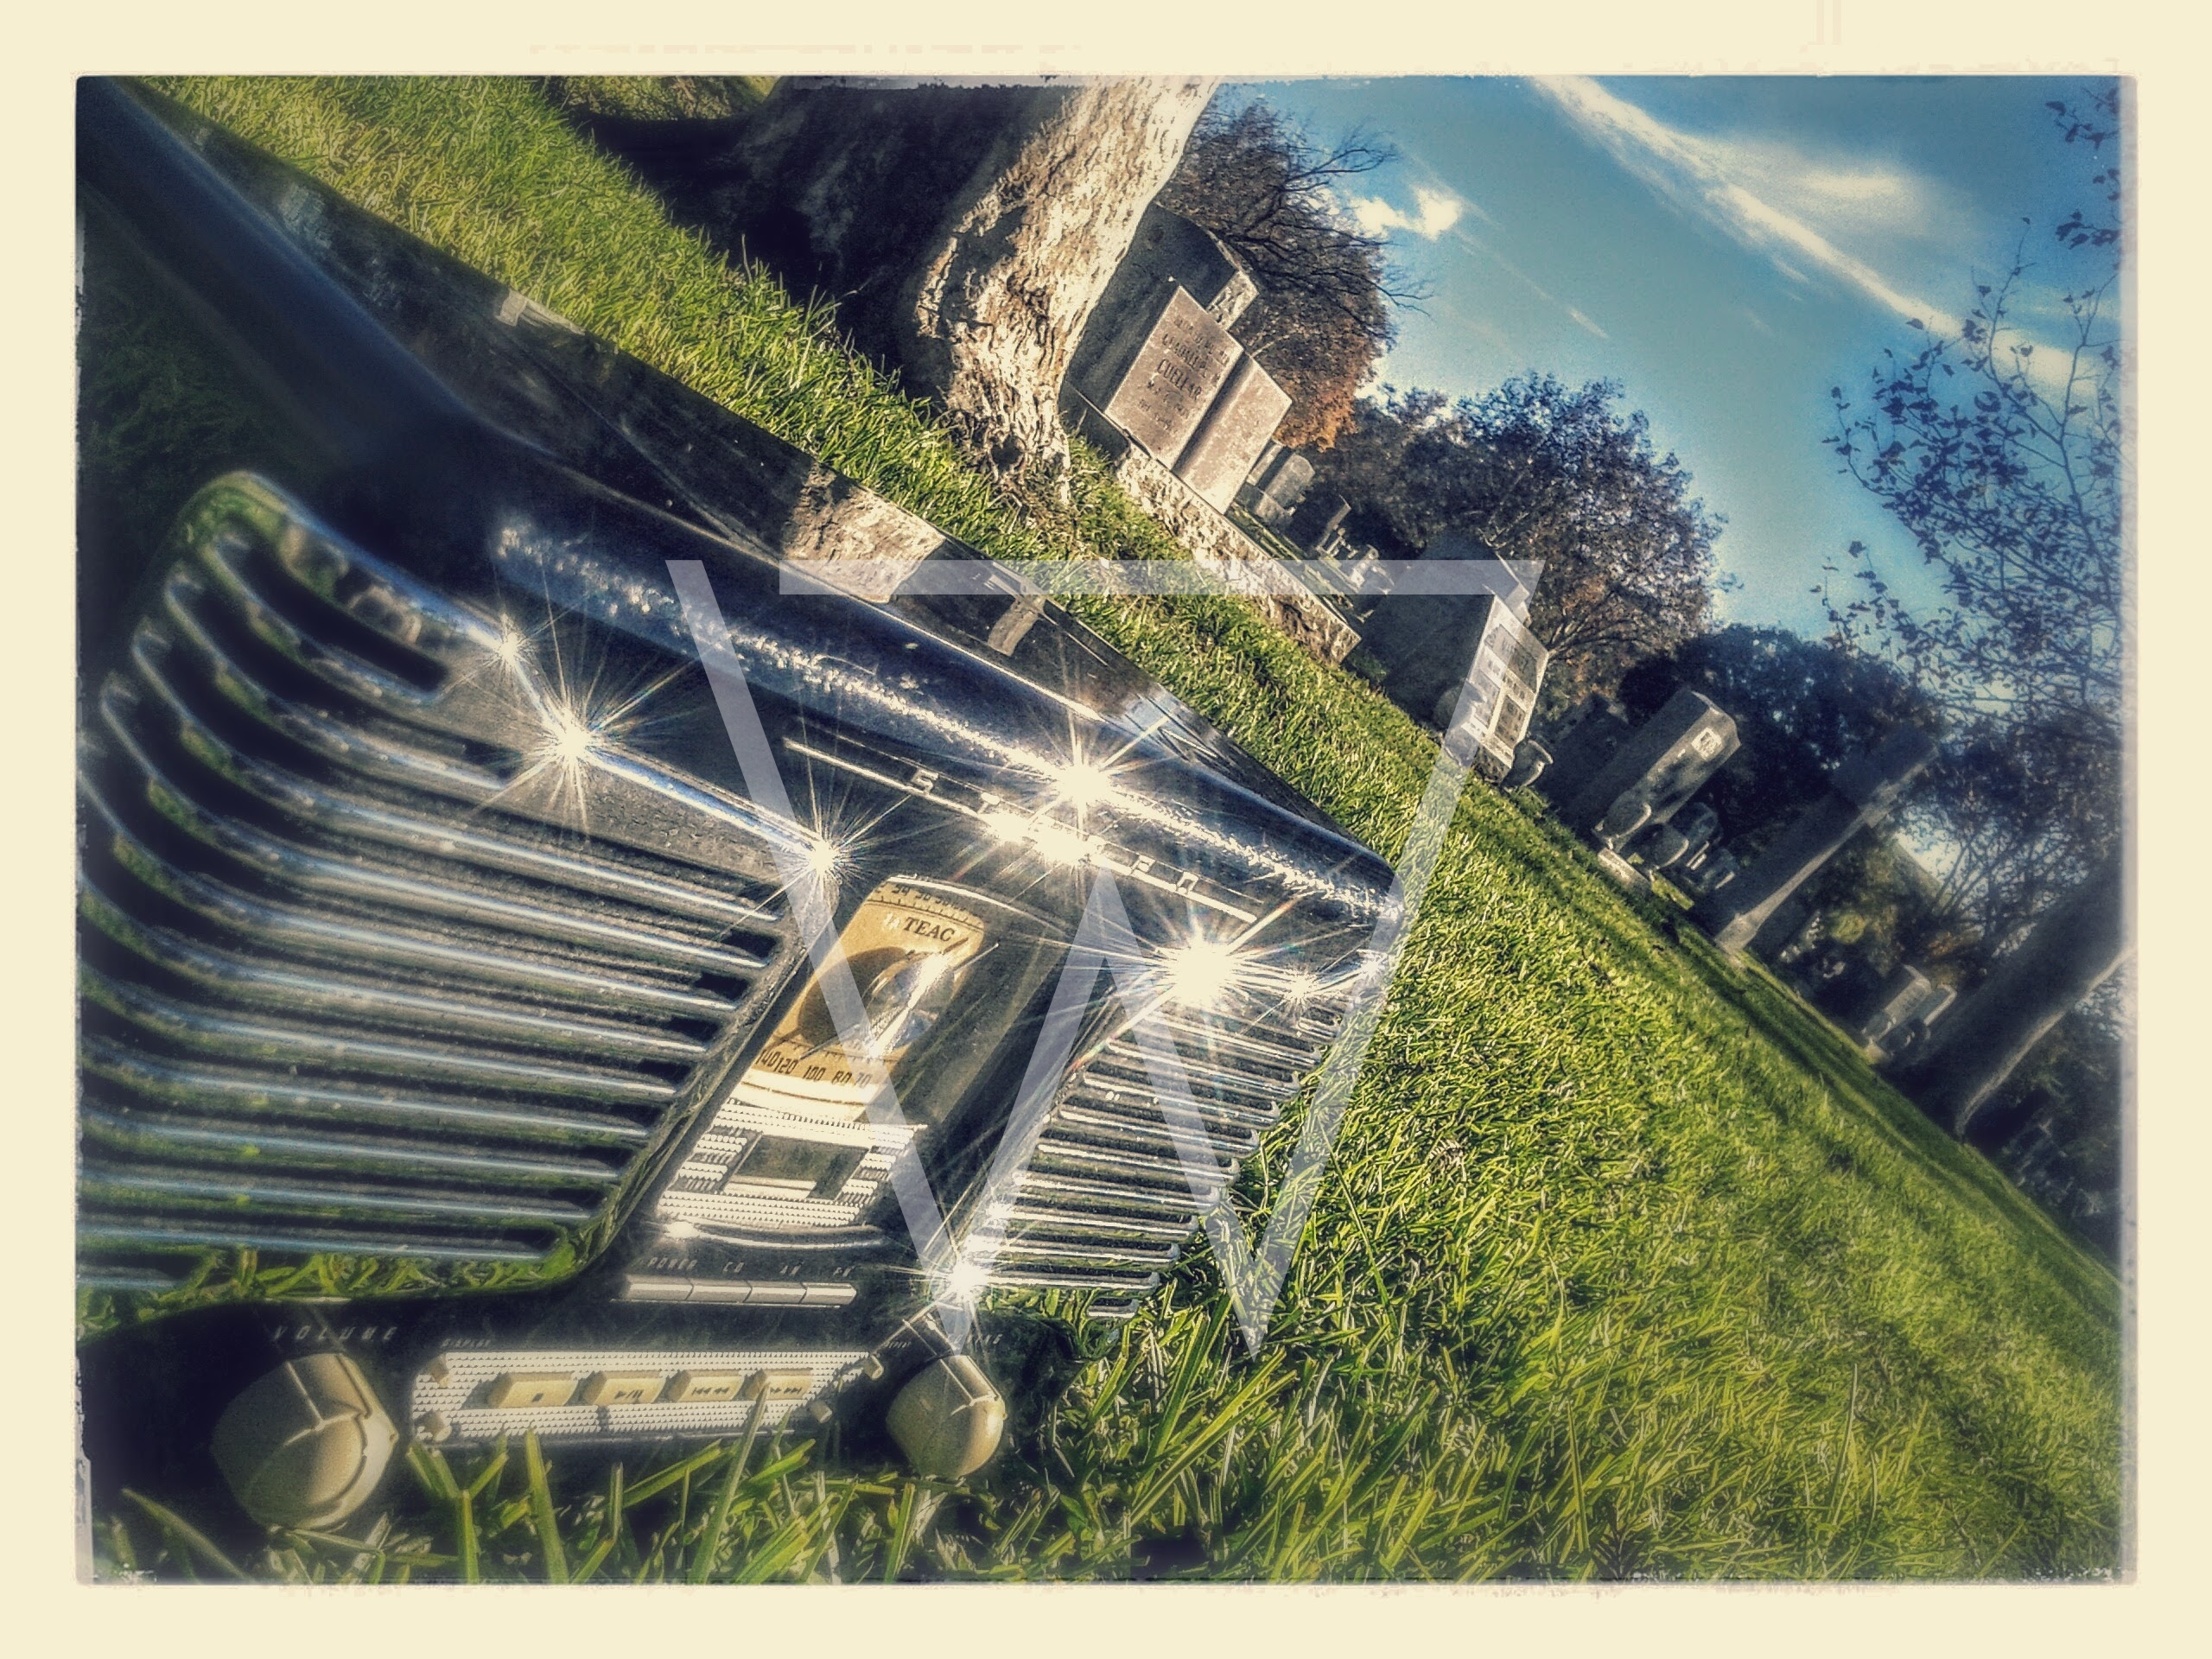 20151120_135651-2-EFFECTS